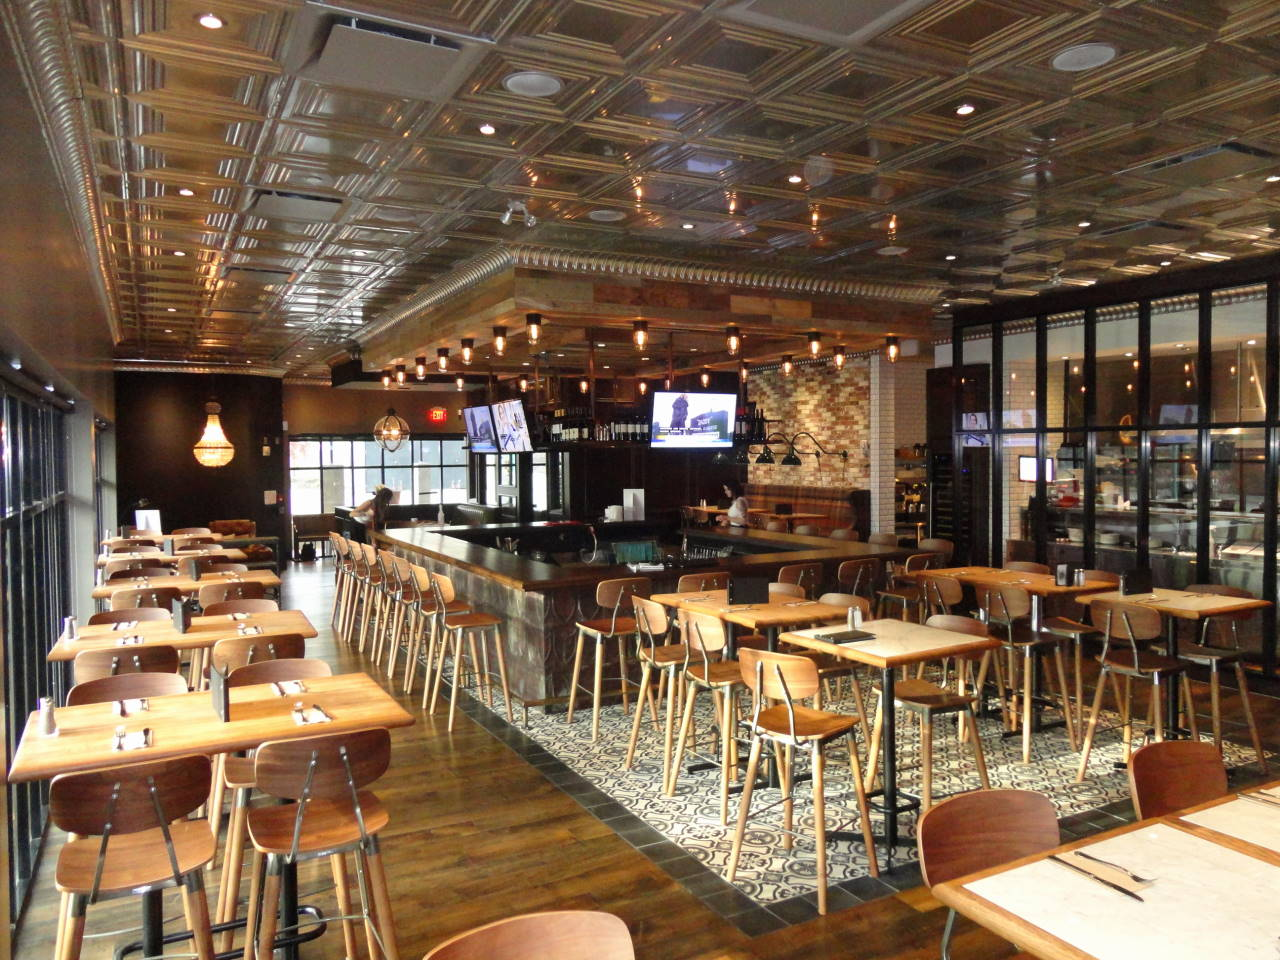 Millwork Wood Grille : Moxie s grill bar opens at sandman signature kamloops